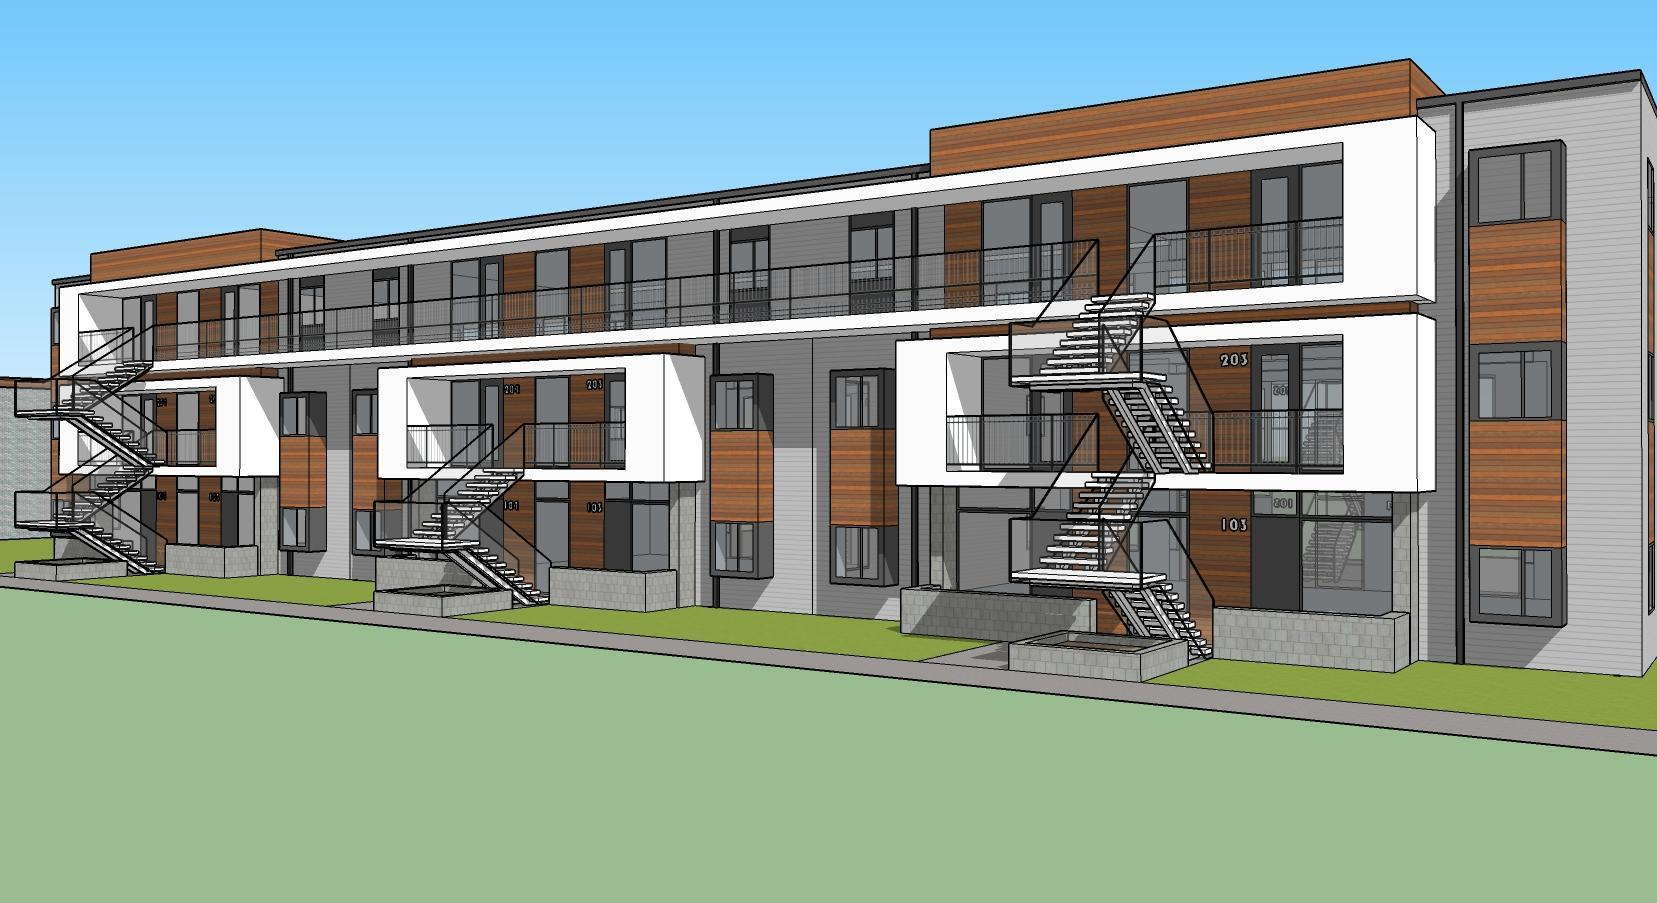 Architects rendering of multi-family property ideal when investing in real estate